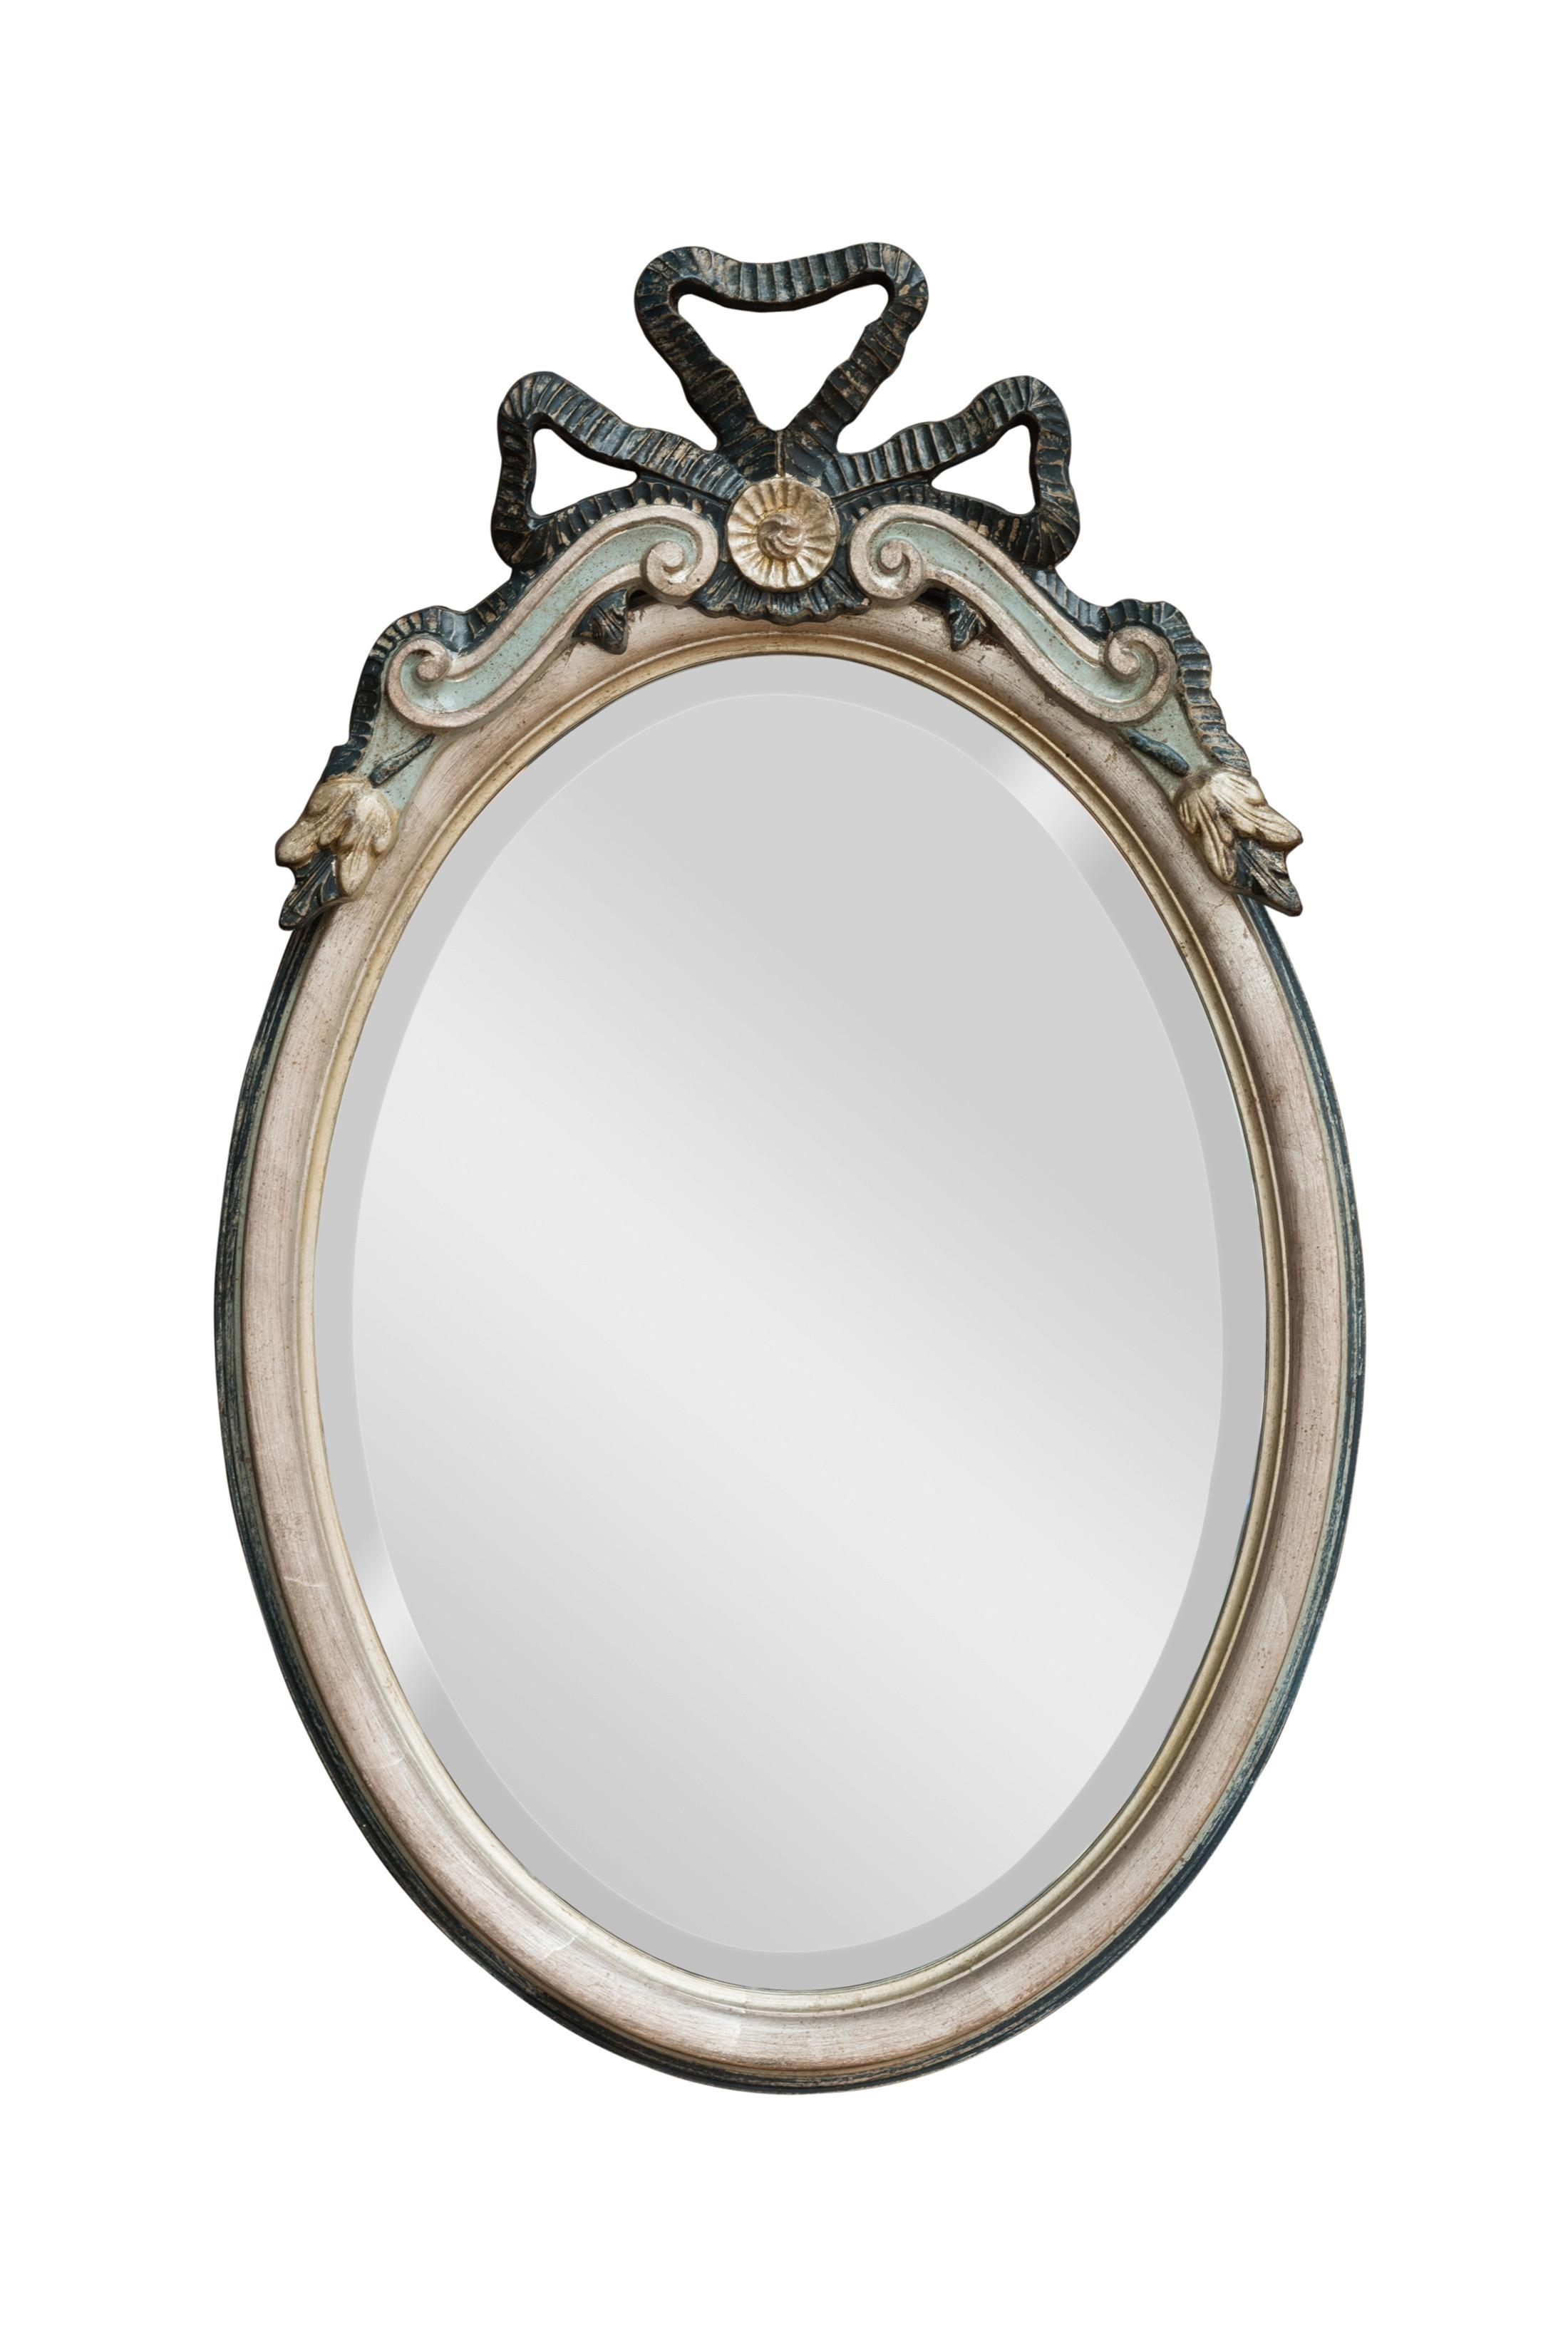 Bow Top Oval Mirror | Hall Mirrors For Sale – Panfili Mirrors Throughout Oval Silver Mirror (View 10 of 20)